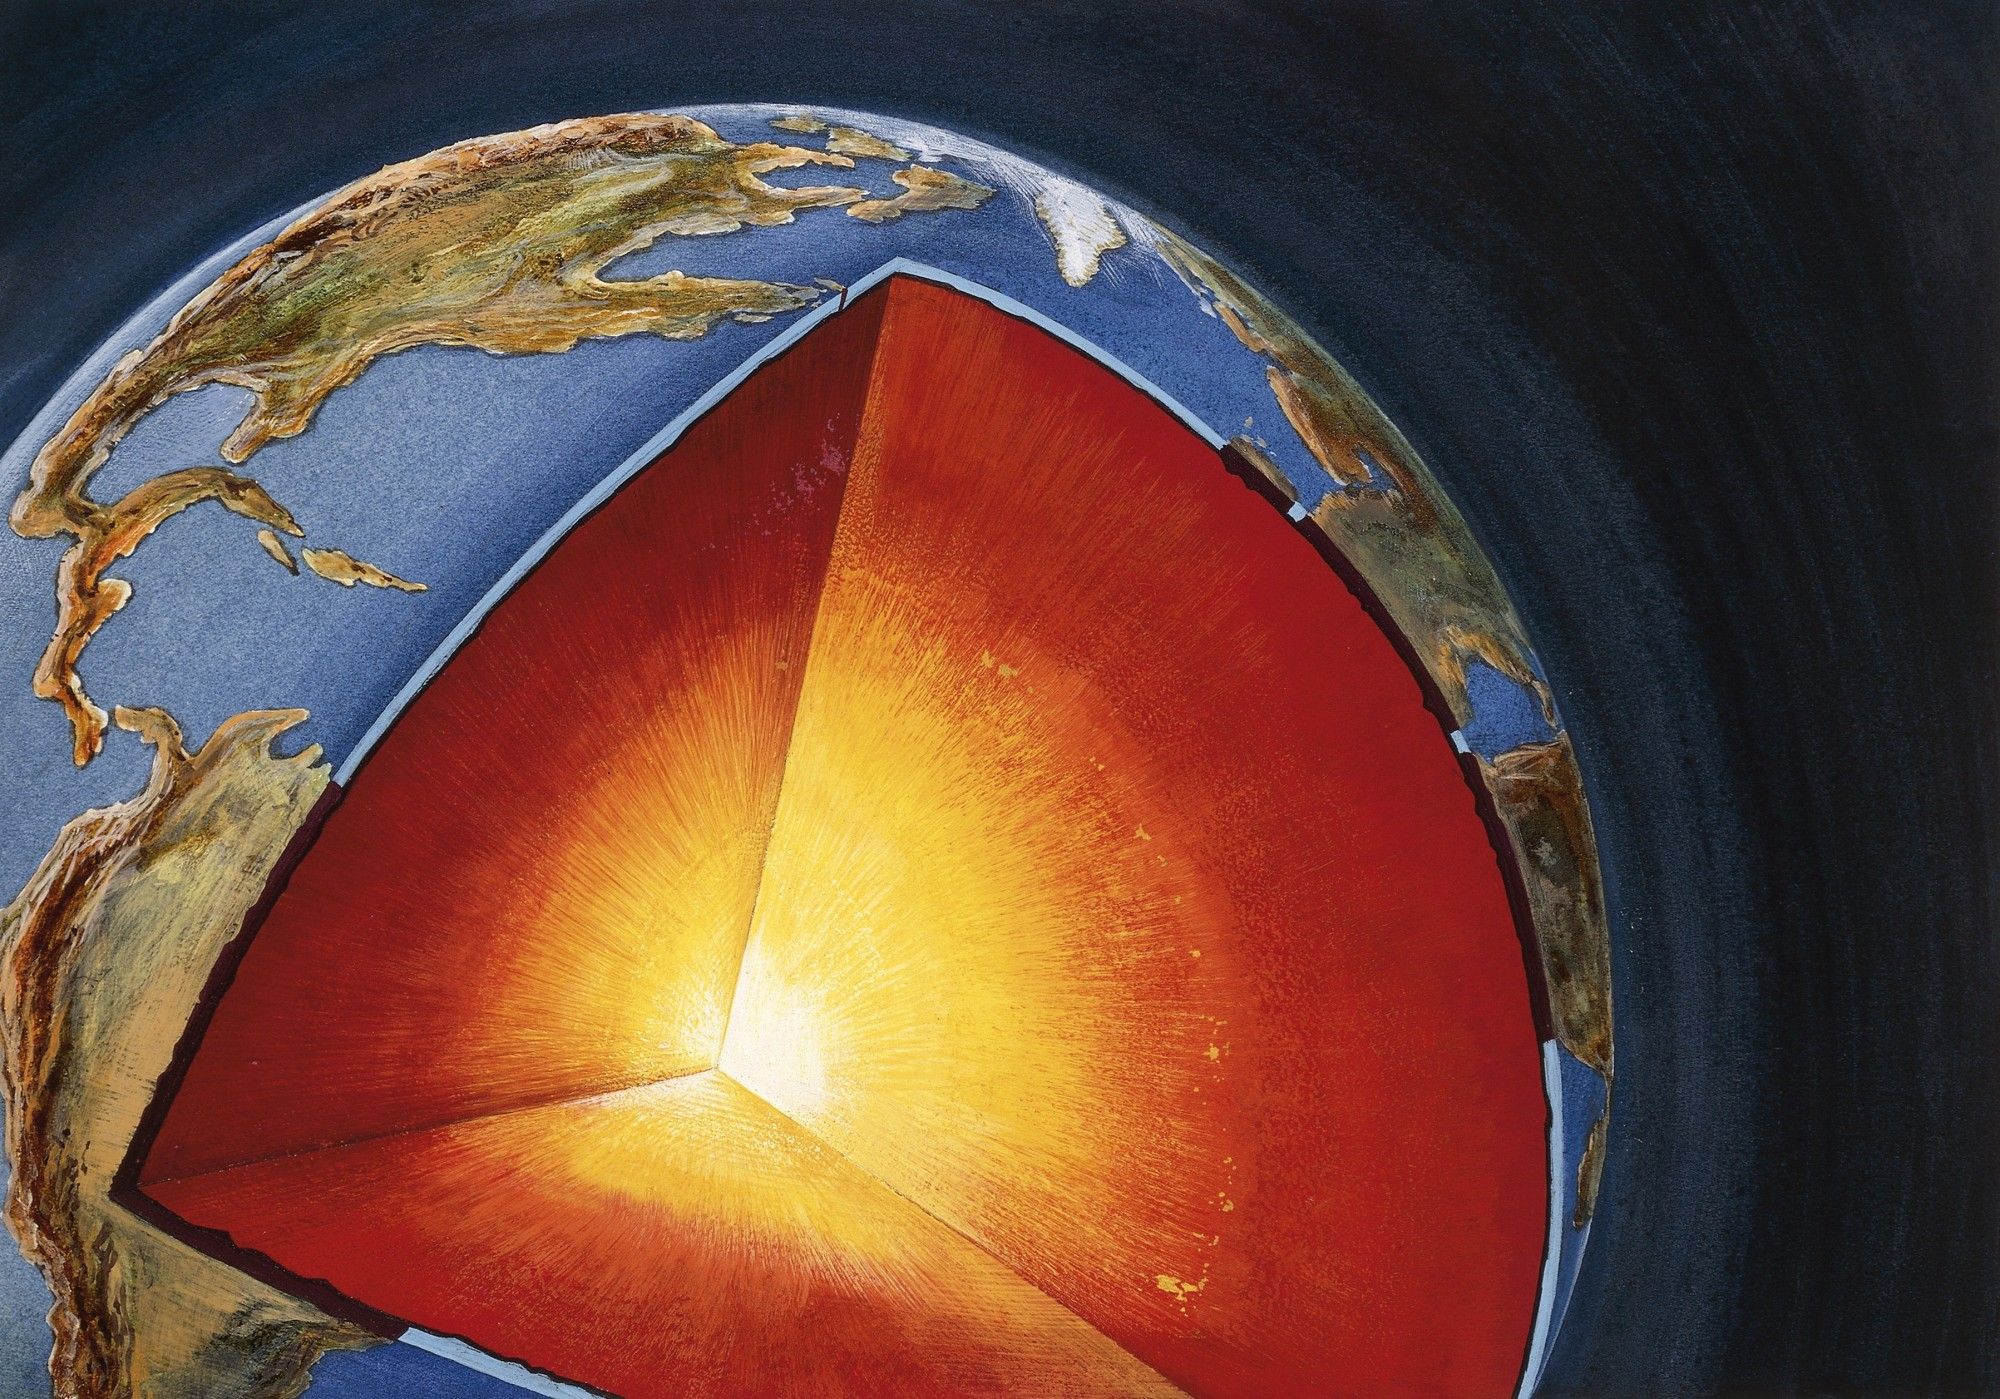 Earth S Core Spins In Two Different Directions